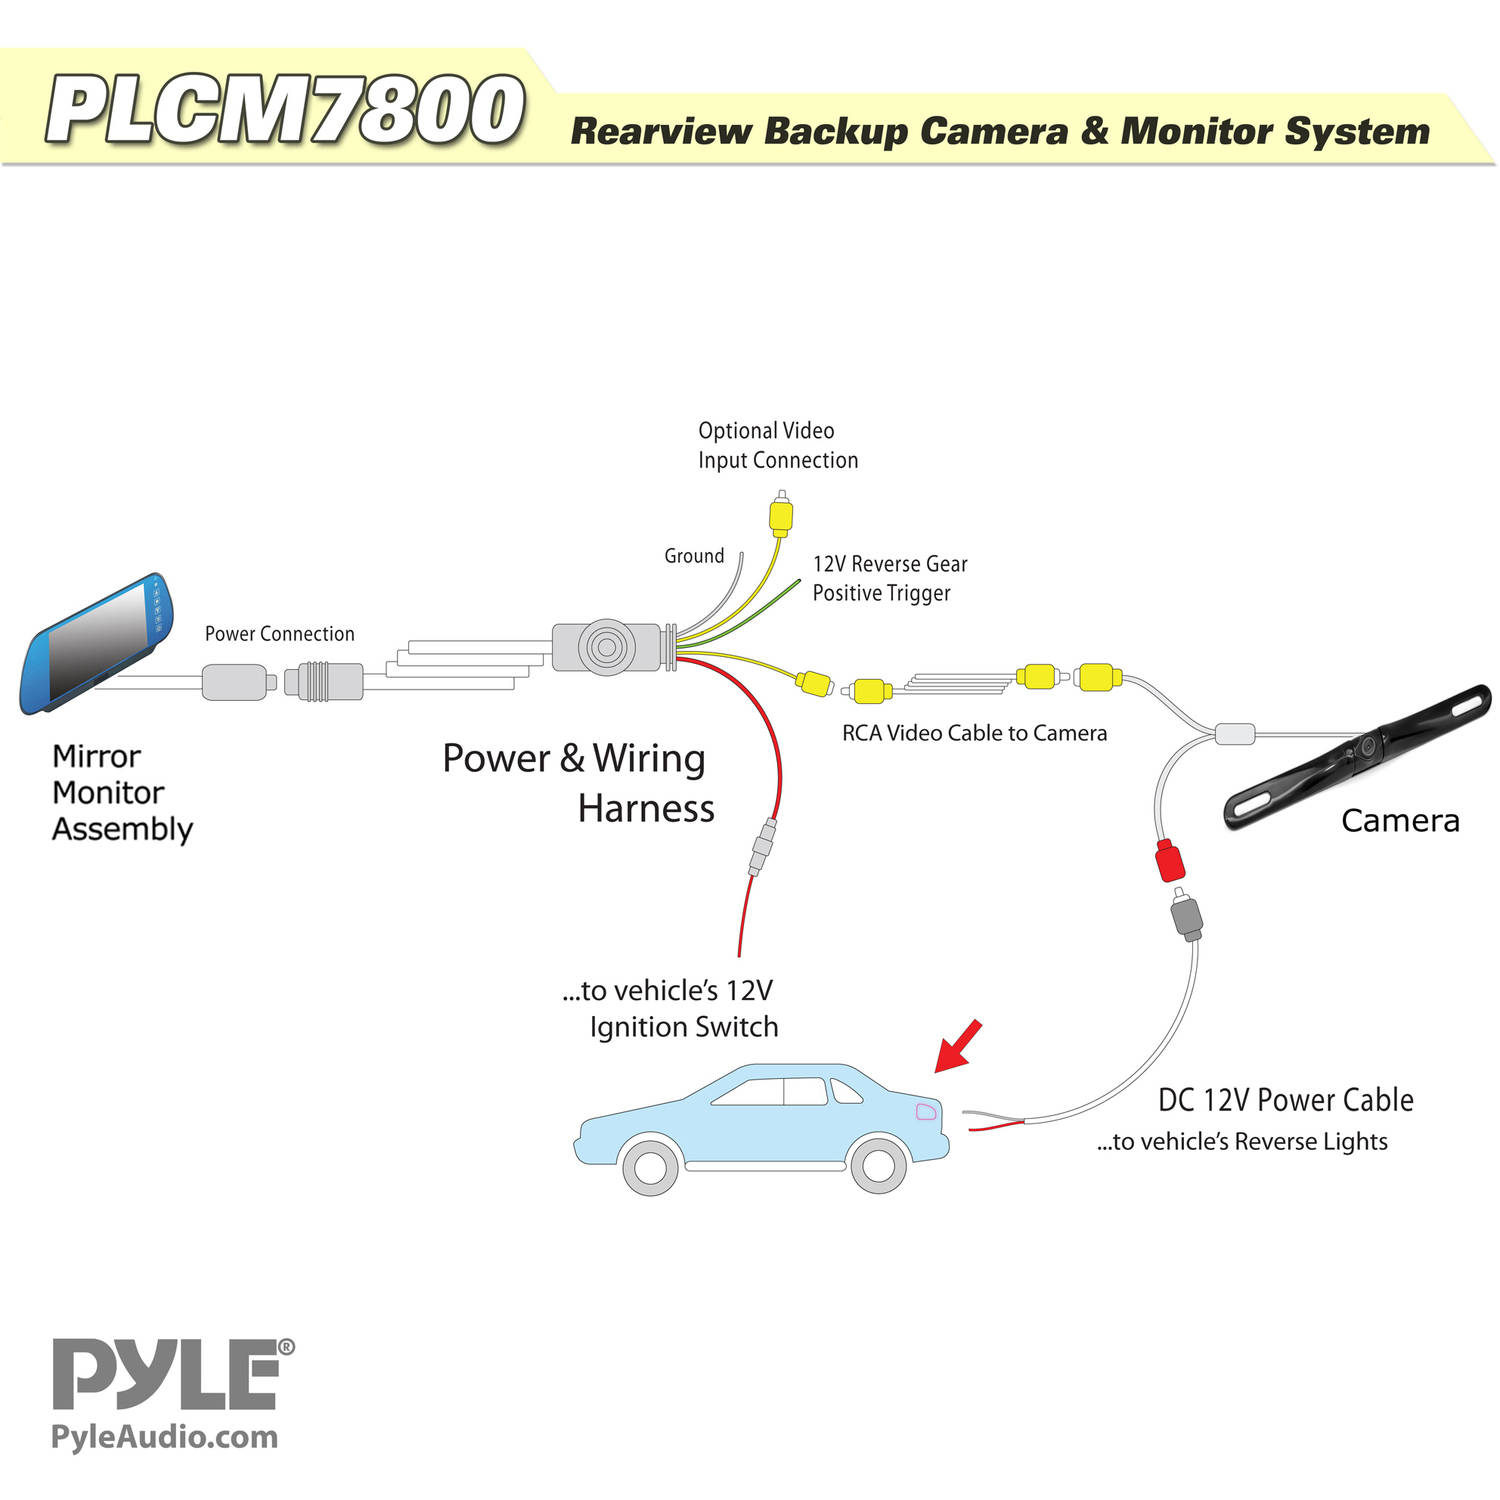 pyle plcm7800 backup rearview camera and monitor system walmart com rh walmart com Rear View Camera Car Backup Camera Installation